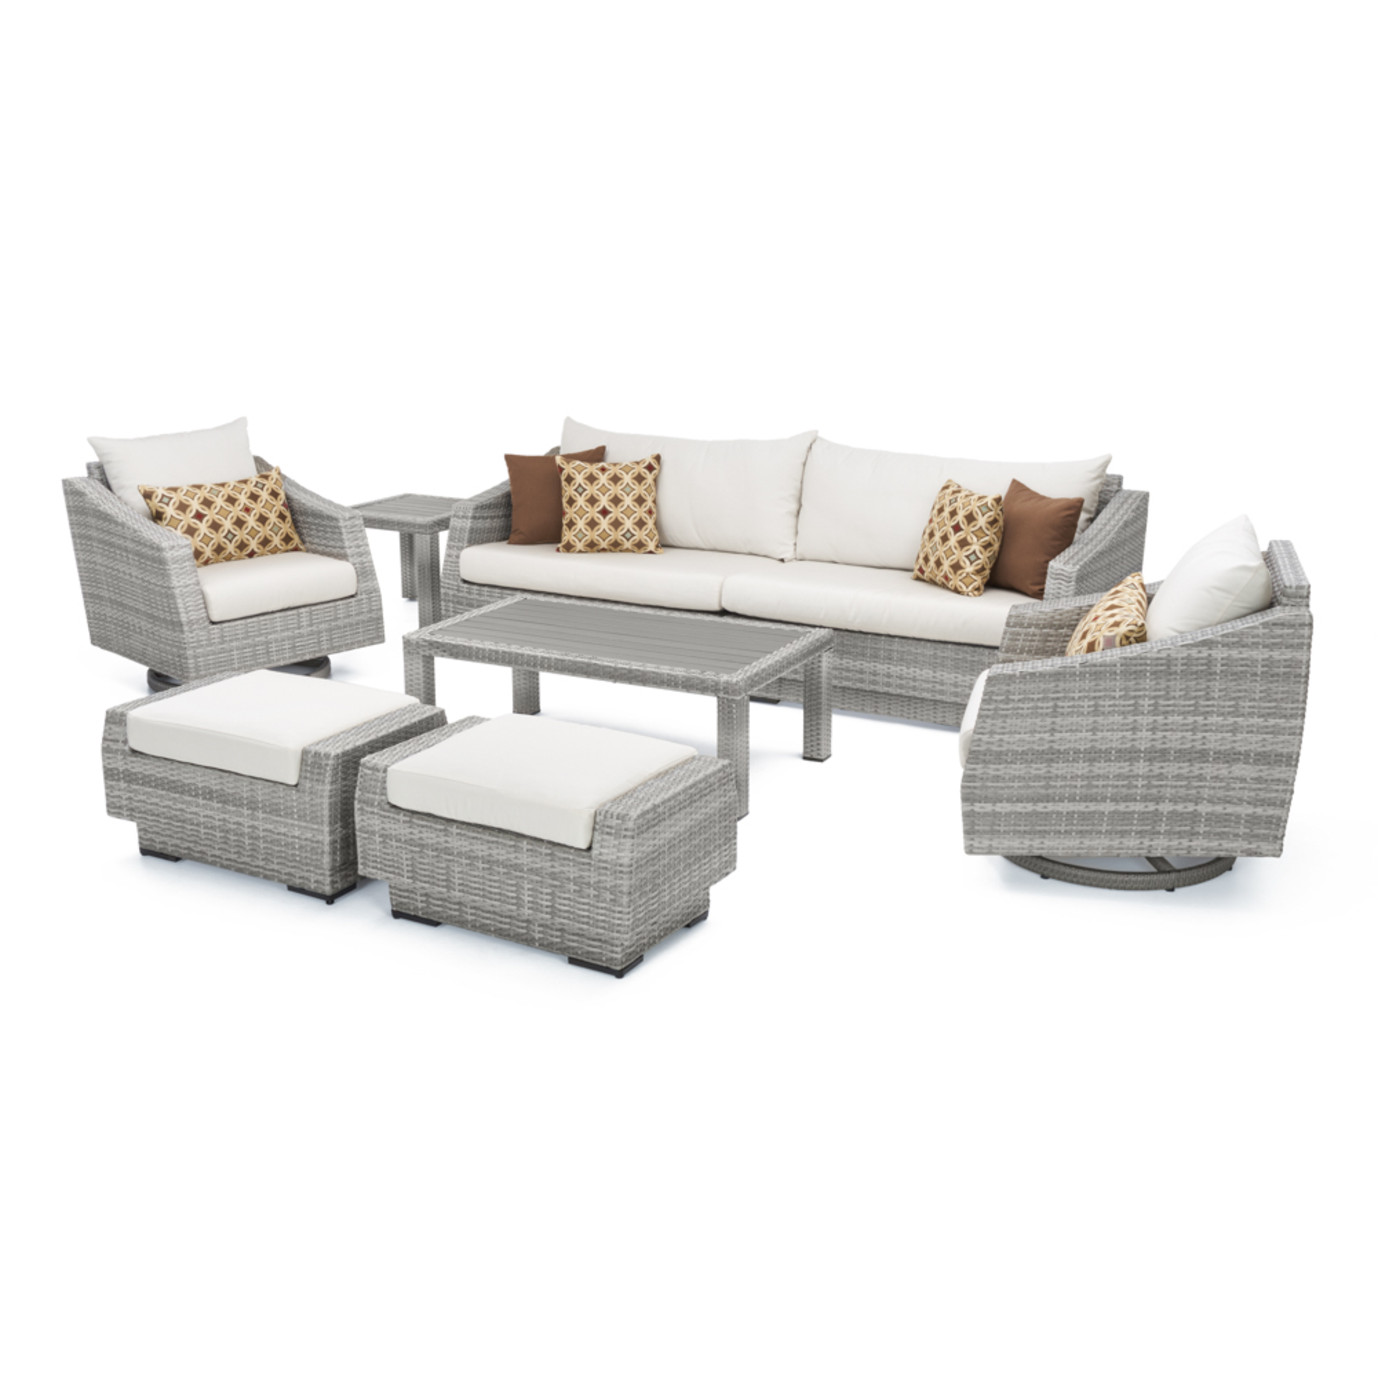 Cannes™ Deluxe 8pc Sofa & Club Chair Set - Moroccan Cream